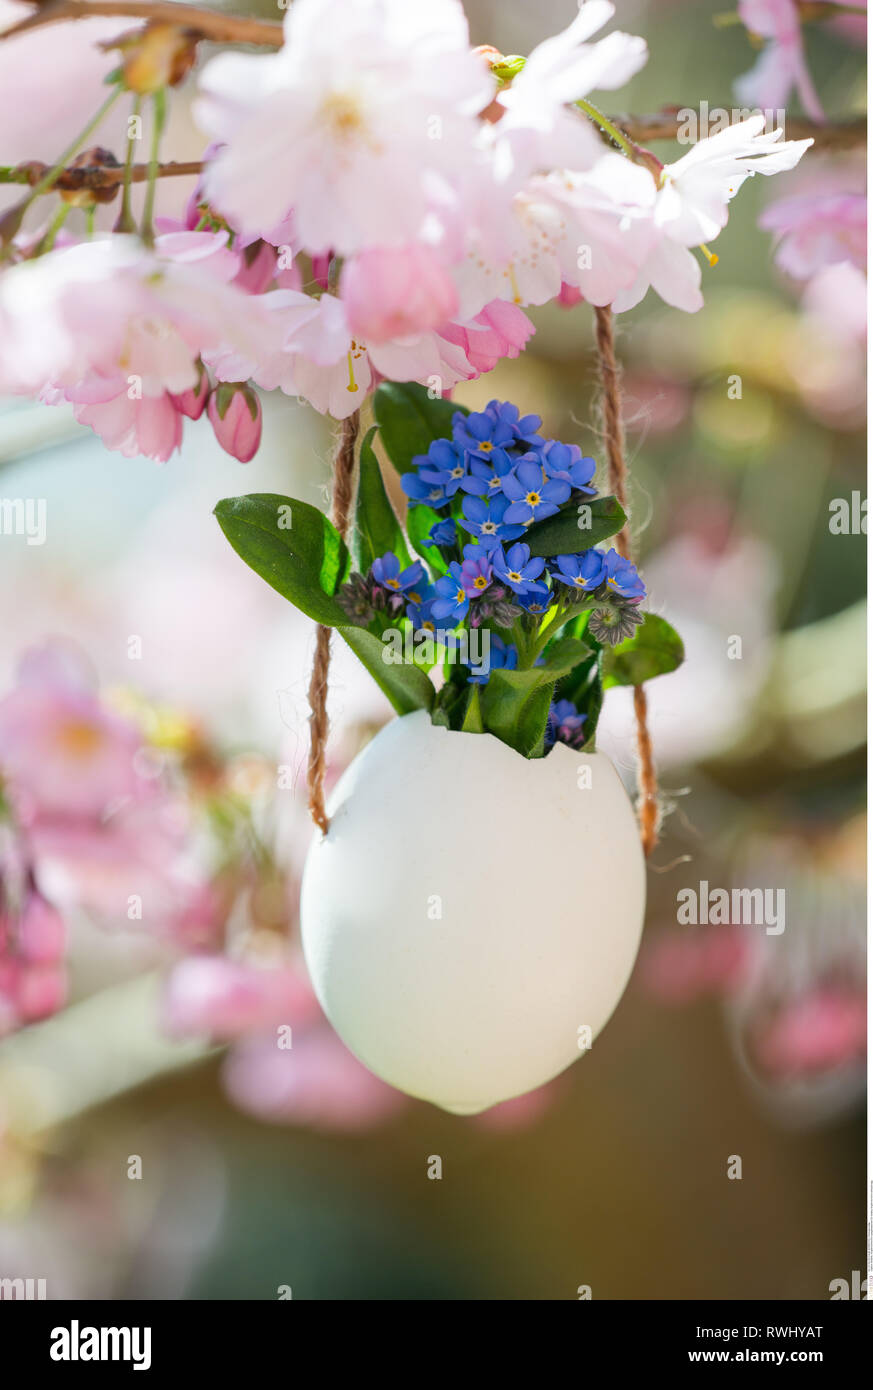 botany, forget-me-not in exhaust egg, Caution! For Greetingcard-Use / Postcard-Use In German Speaking Countries Certain Restrictions May Apply Stock Photo